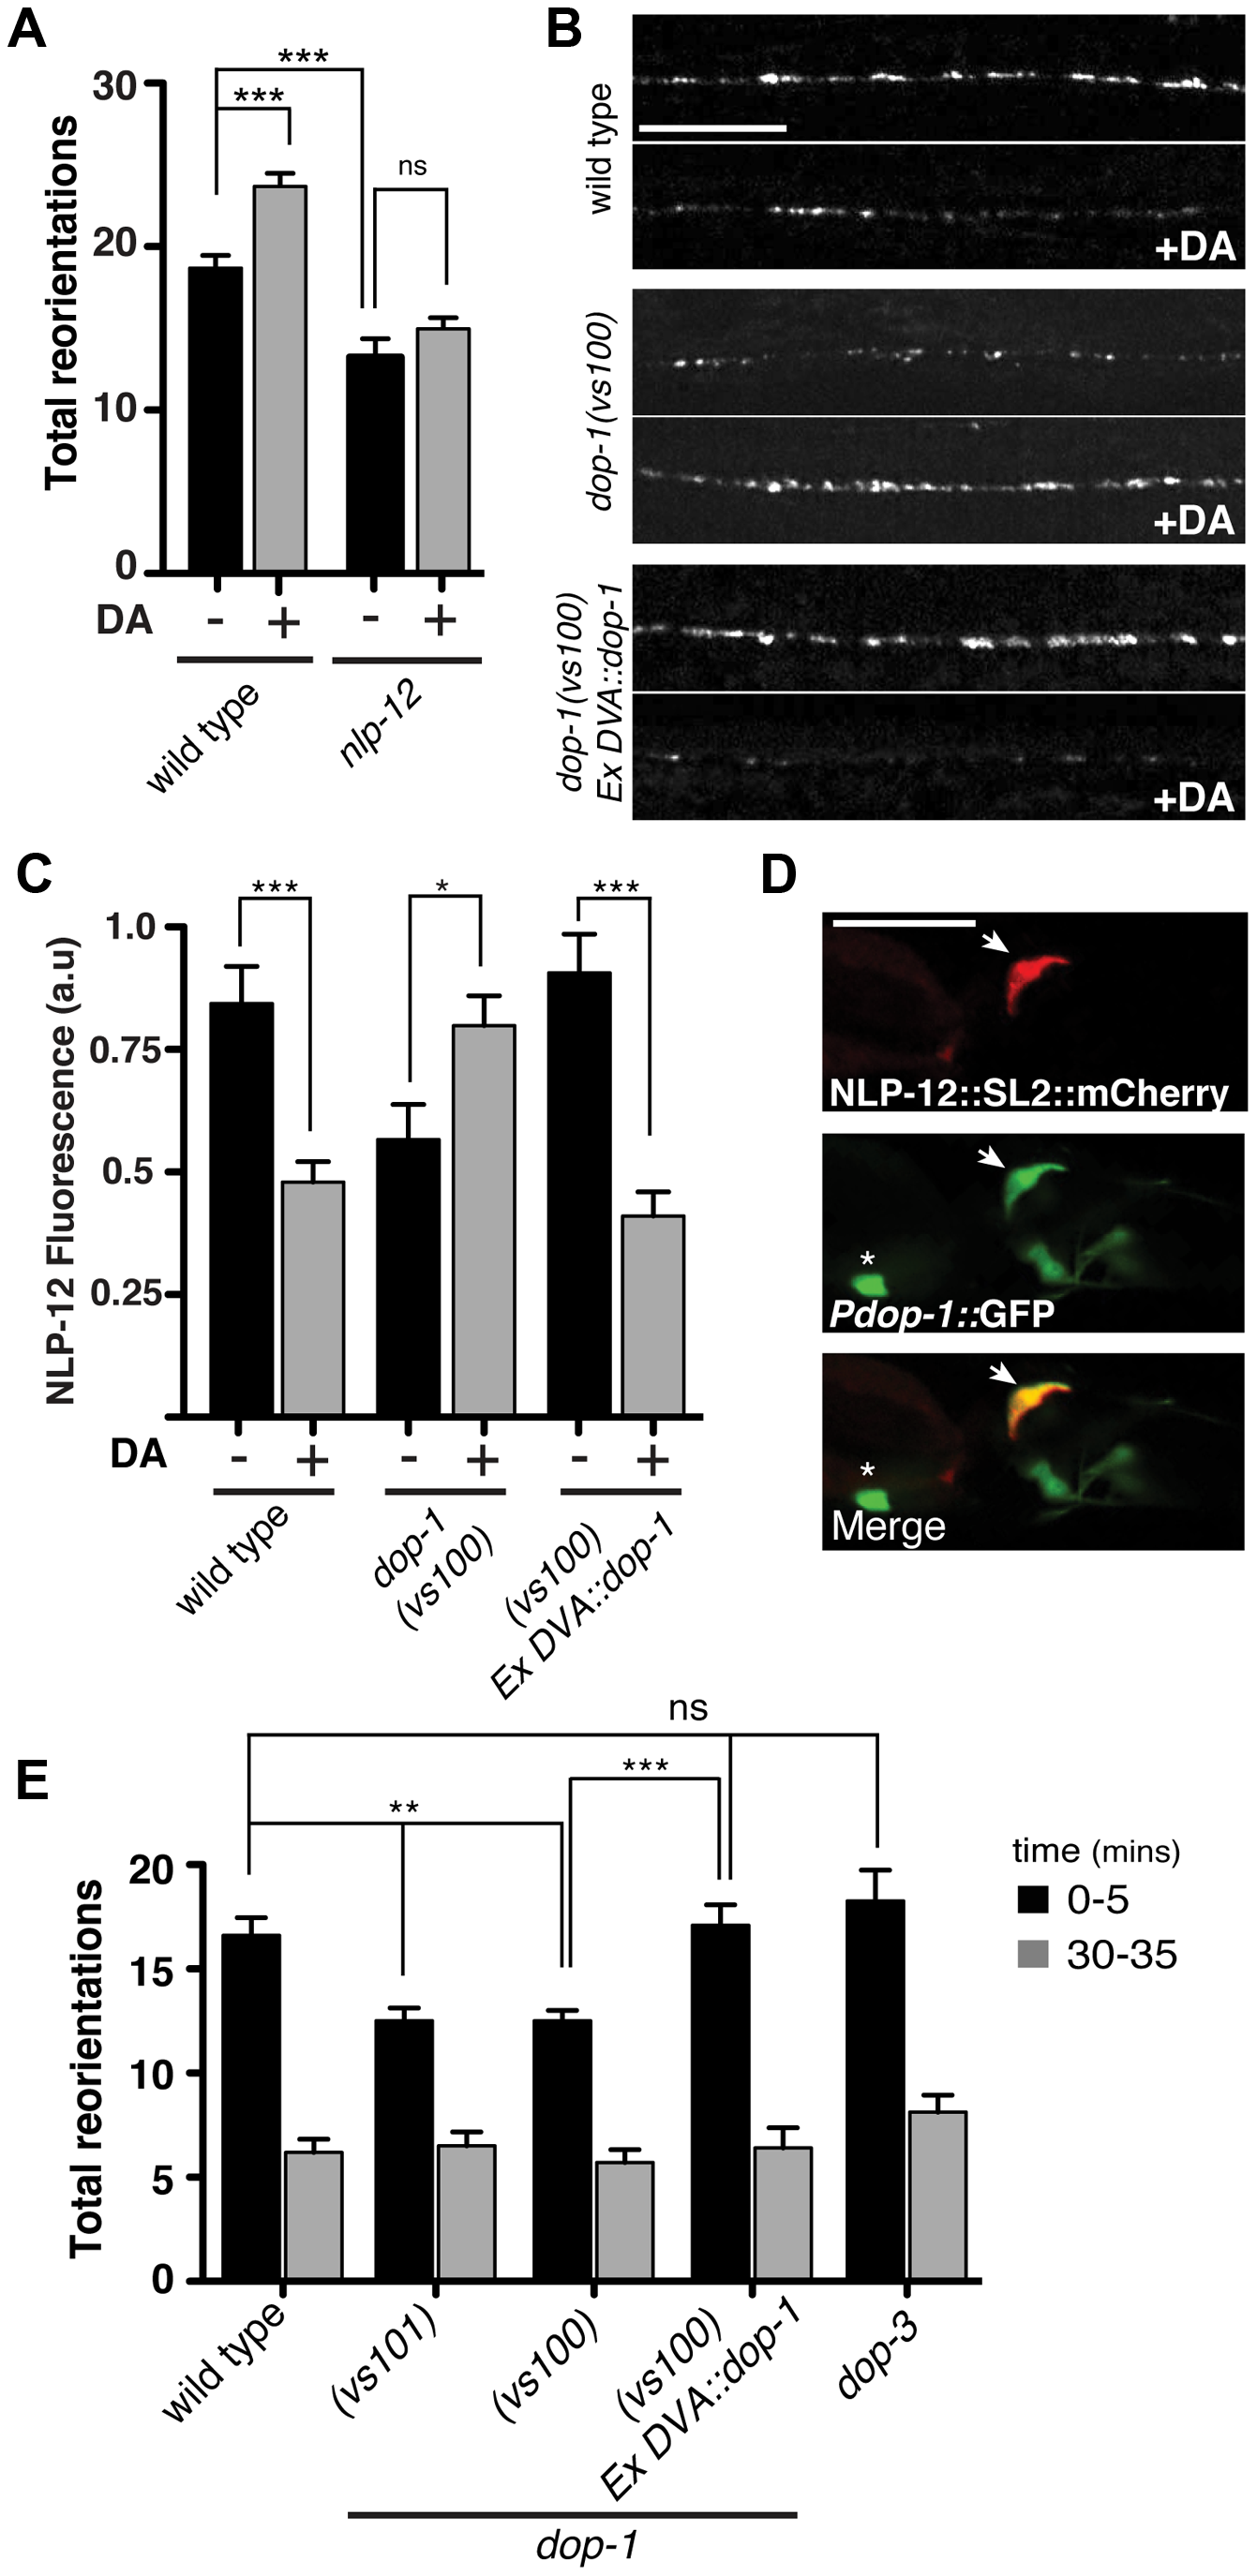 The dopamine receptor DOP-1 is required in DVA for NLP-12 modulation of food searching.